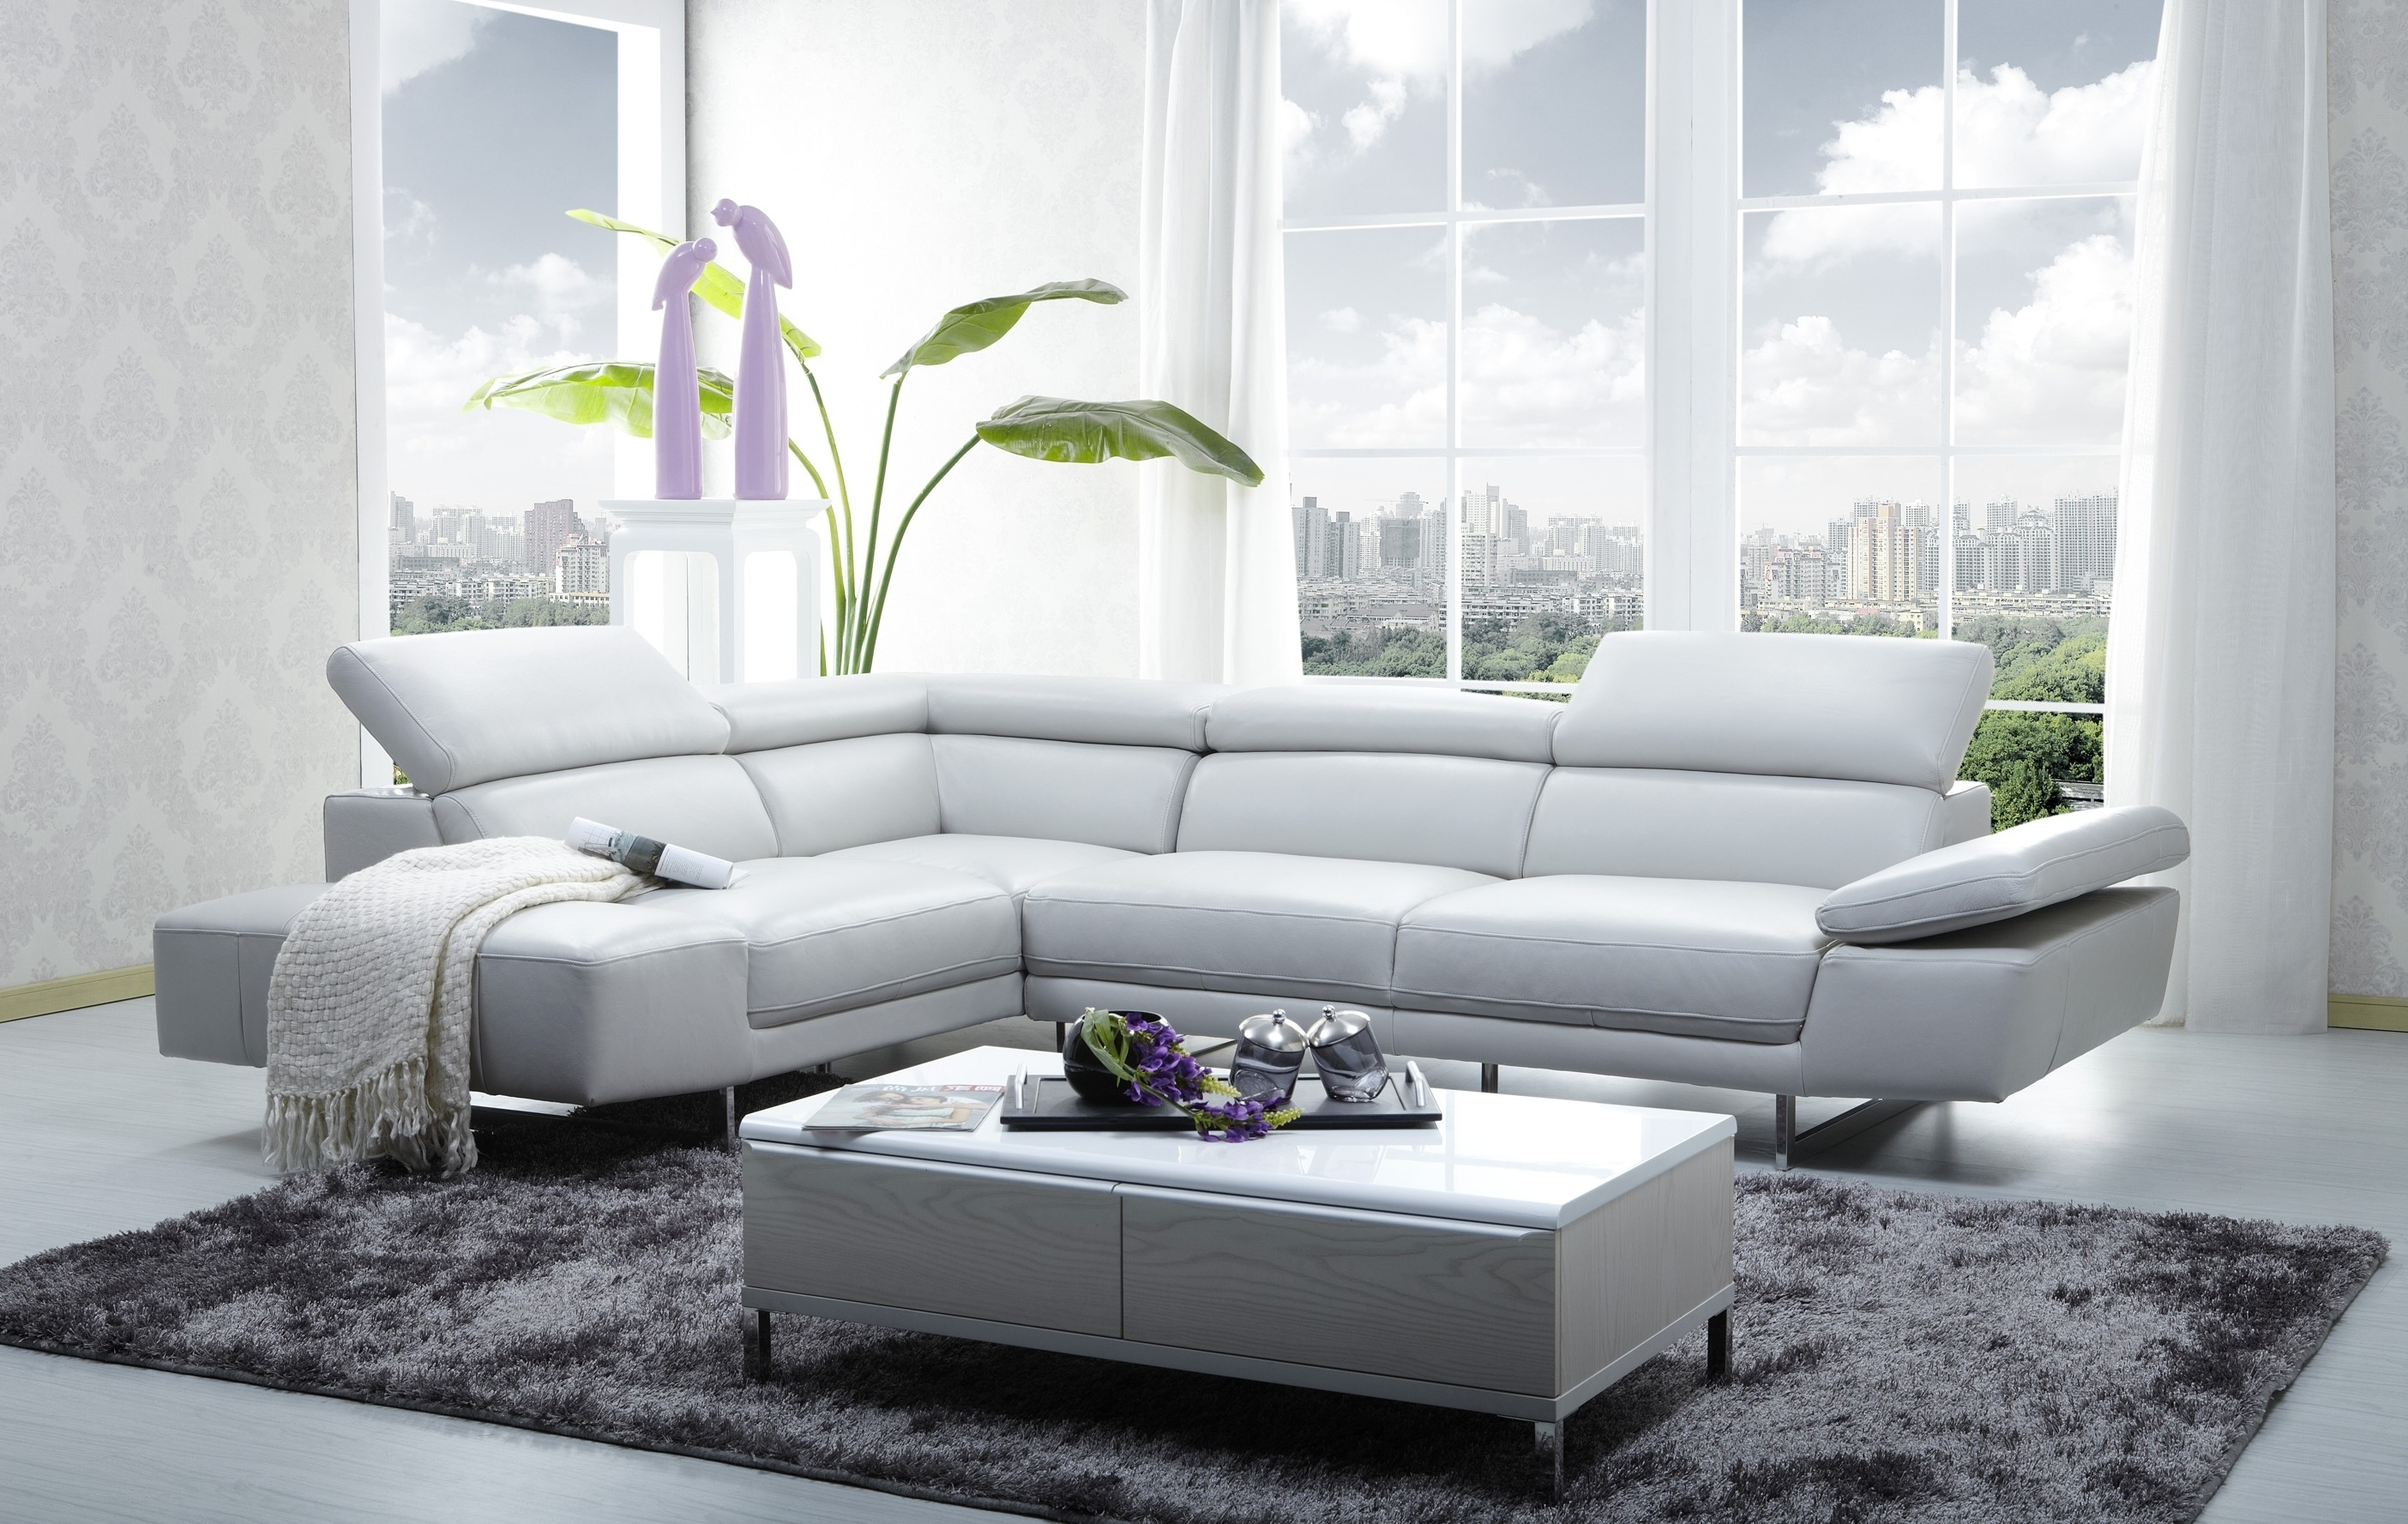 1717 Italian Leather Modern Sectional Sofa With Regard To Newest Modern Sofas (View 1 of 20)